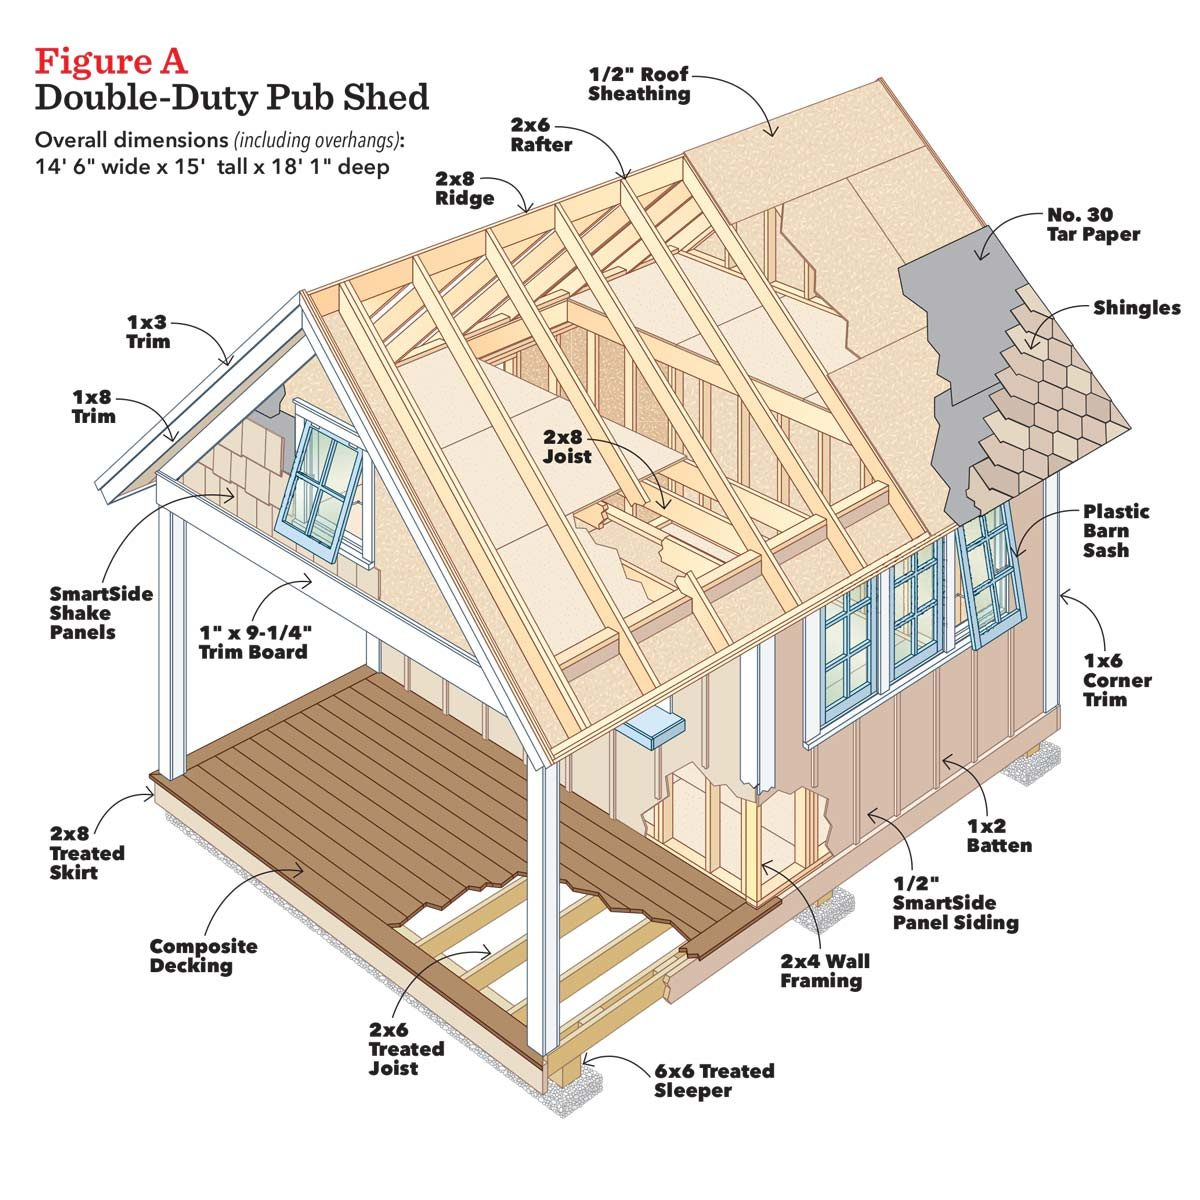 hight resolution of getting started 035 fhm julaug17 pub shed project drawing figure a